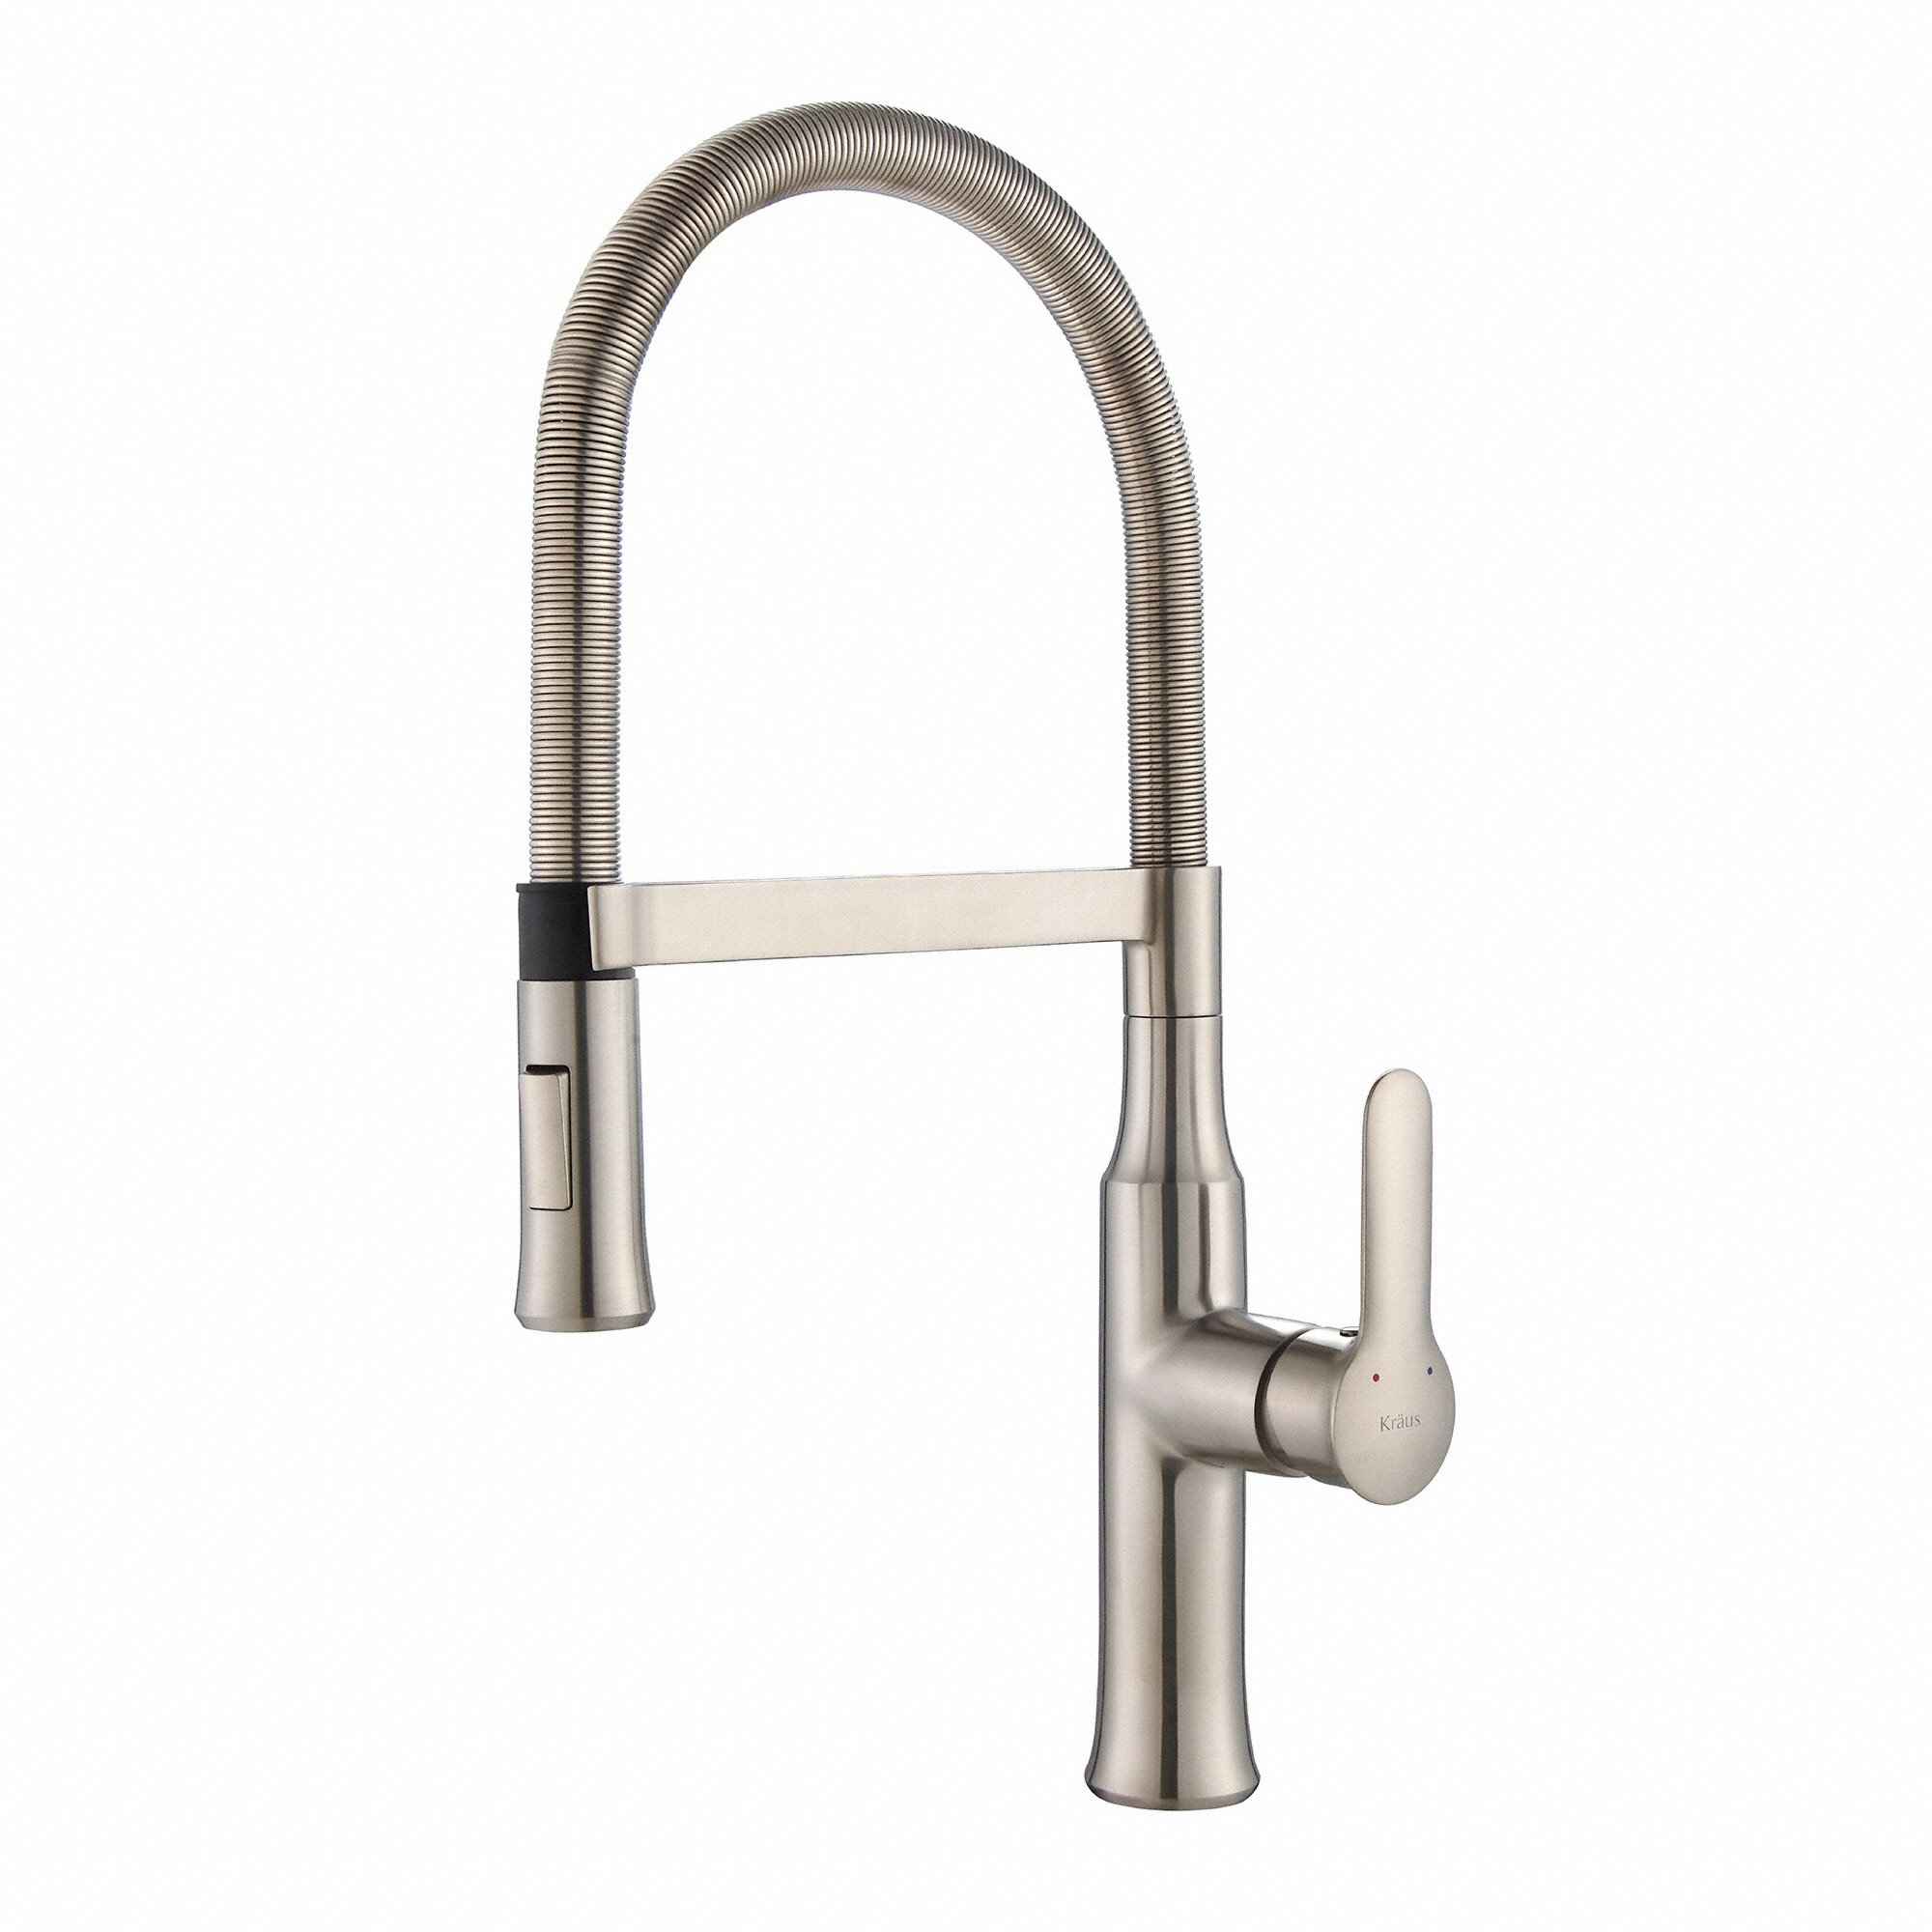 bar dst leland magnetic pull with in ar spray includes warranty down com prep bronze delta head arctic docking stainless faucets lifetime faucet venetian installed